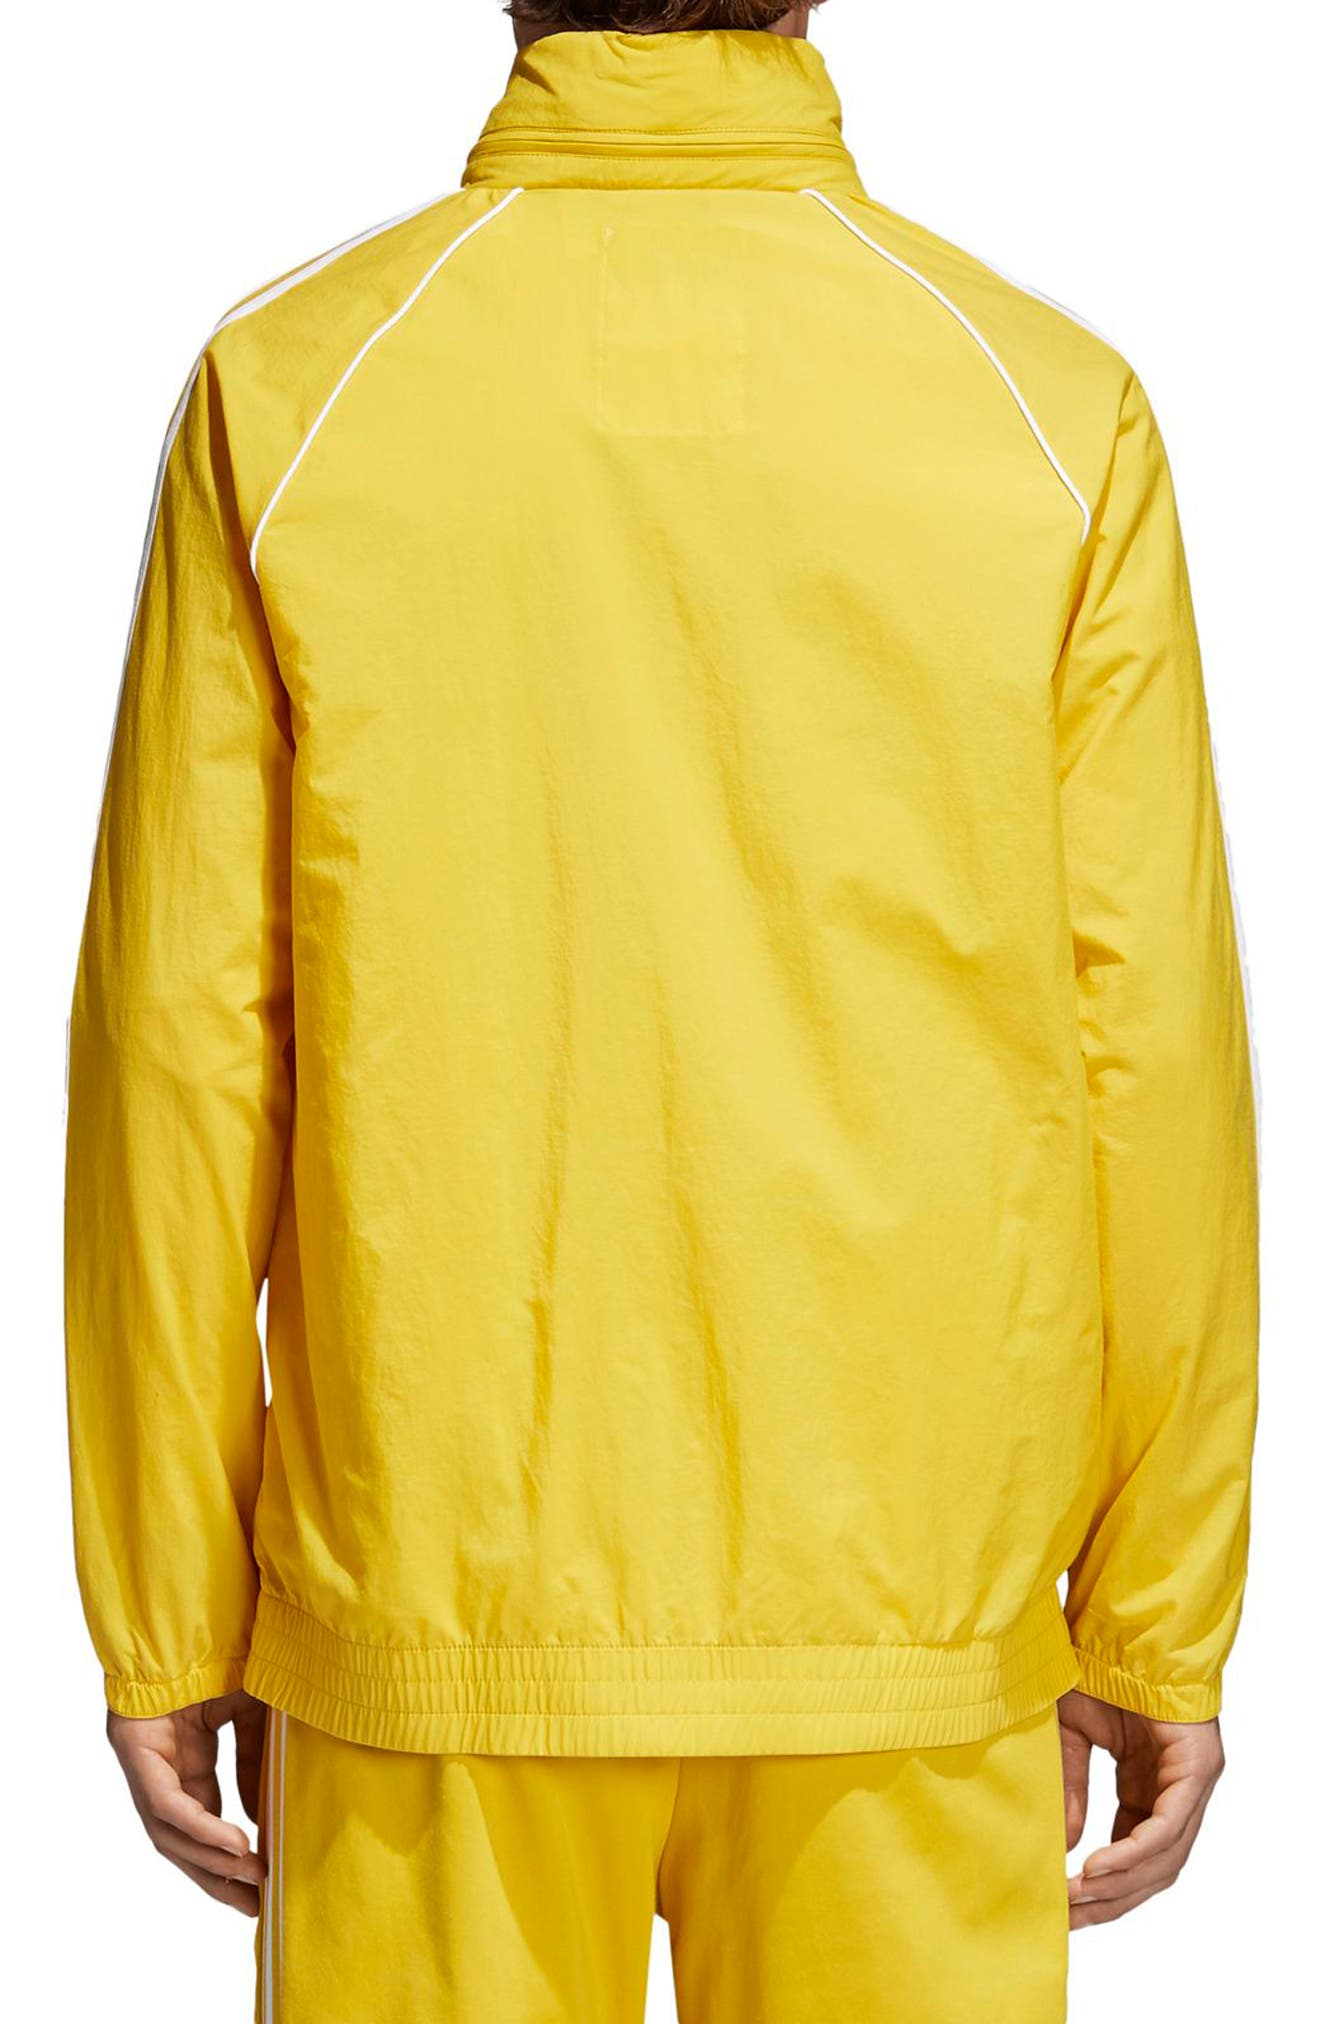 SST Windbreaker,                             Alternate thumbnail 2, color,                             Tribe Yellow